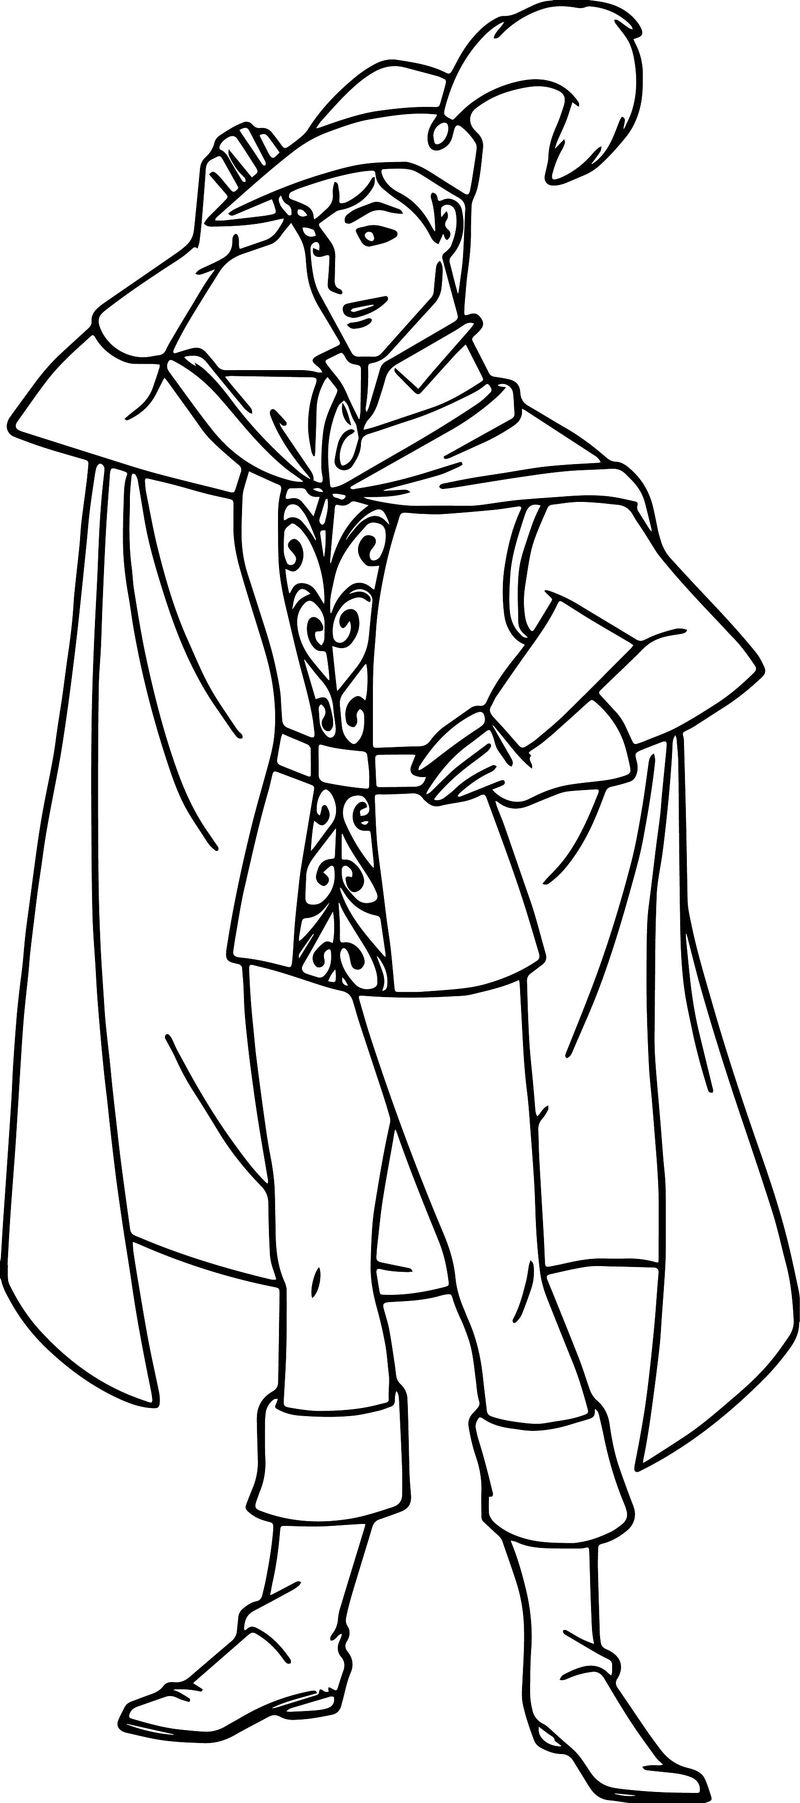 Prince Phillip And Samson Pose Coloring Pages